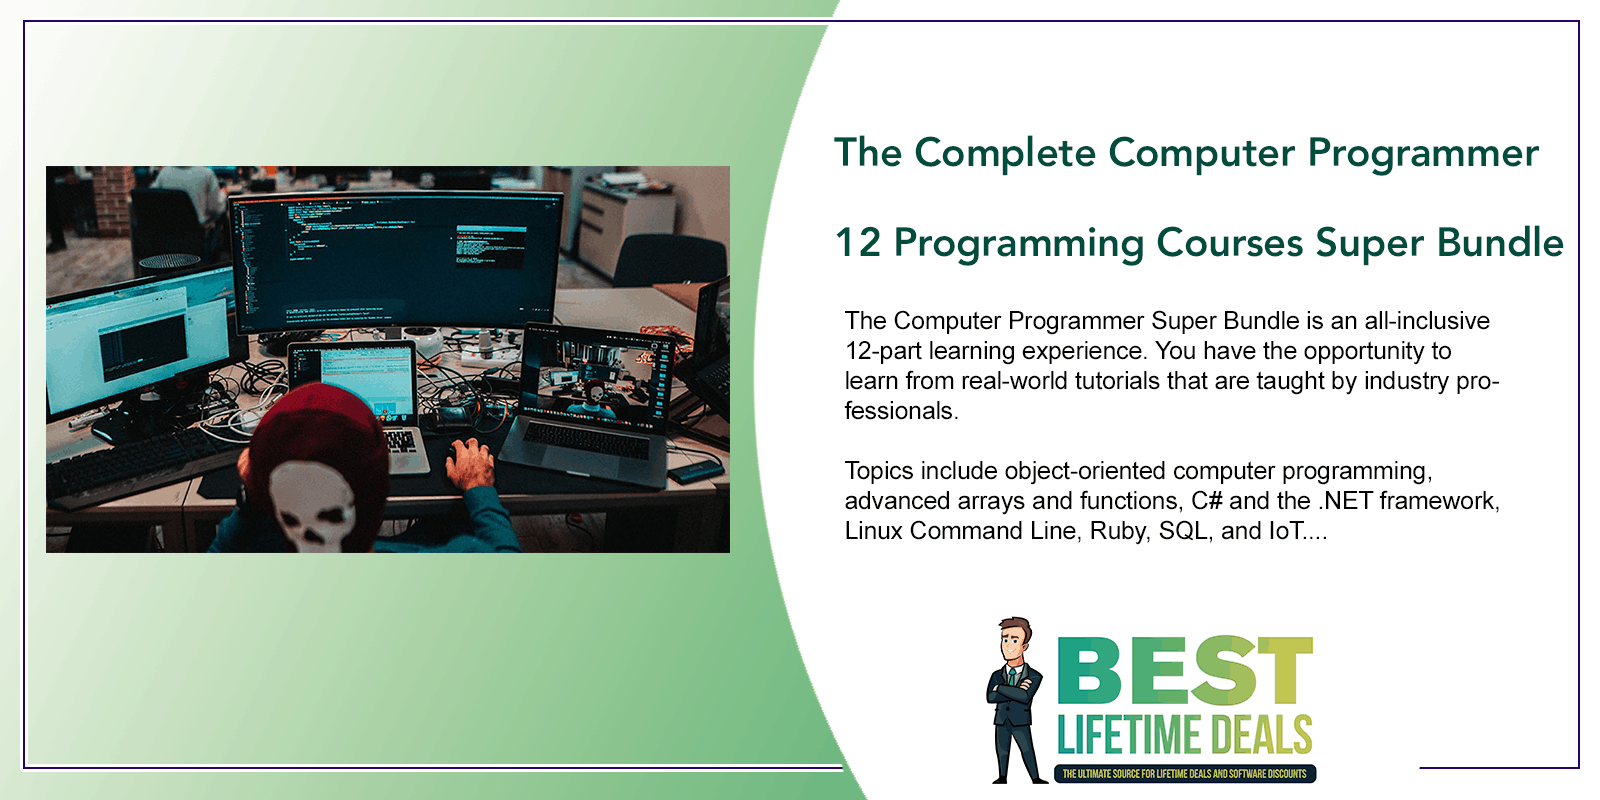 The Complete Computer Programmer Featured Image